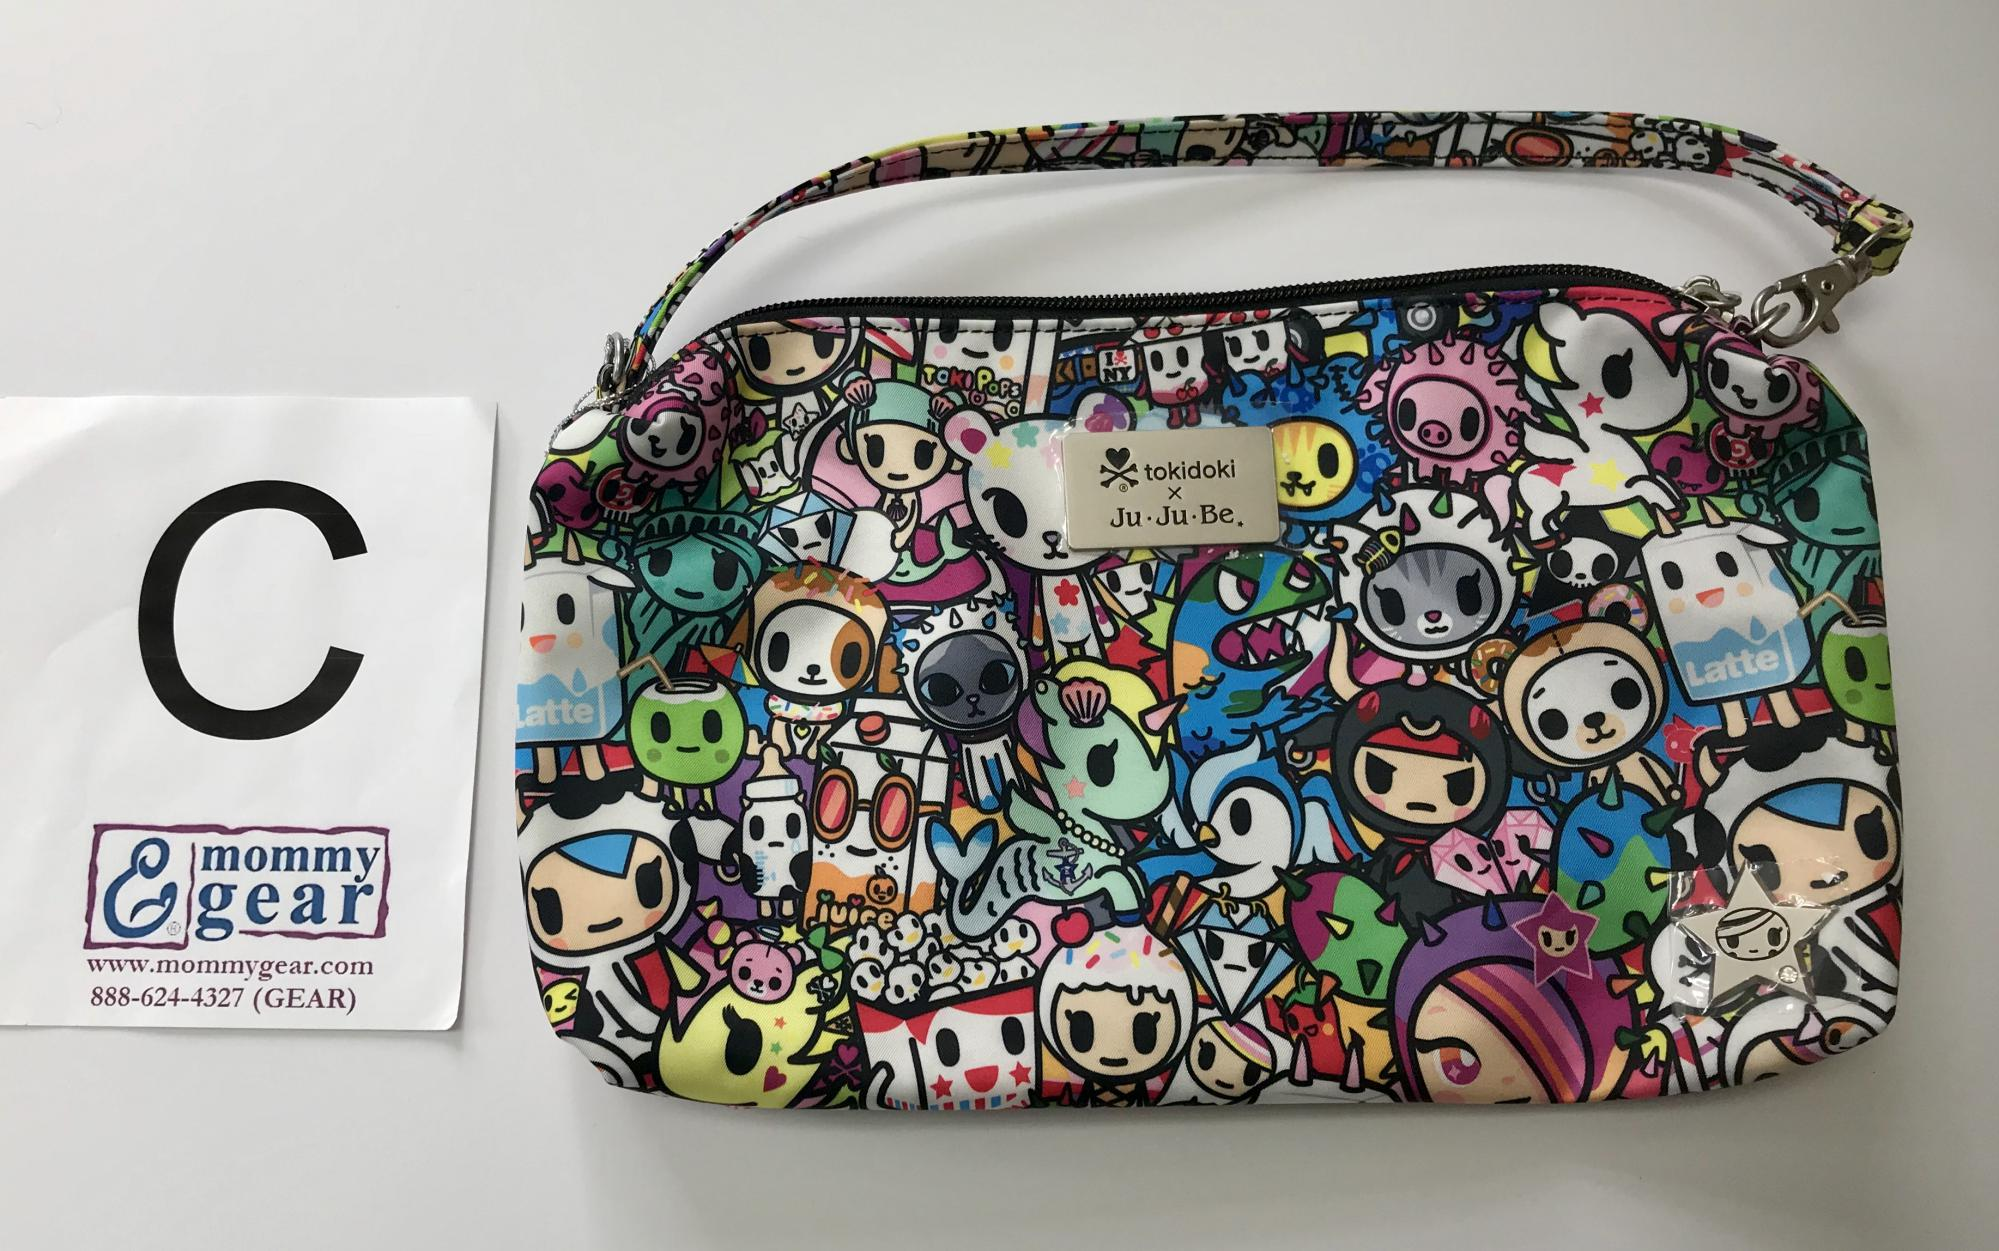 ju-ju-be-tokidoki-iconic-2.0-be-quick-pp-c.jpg